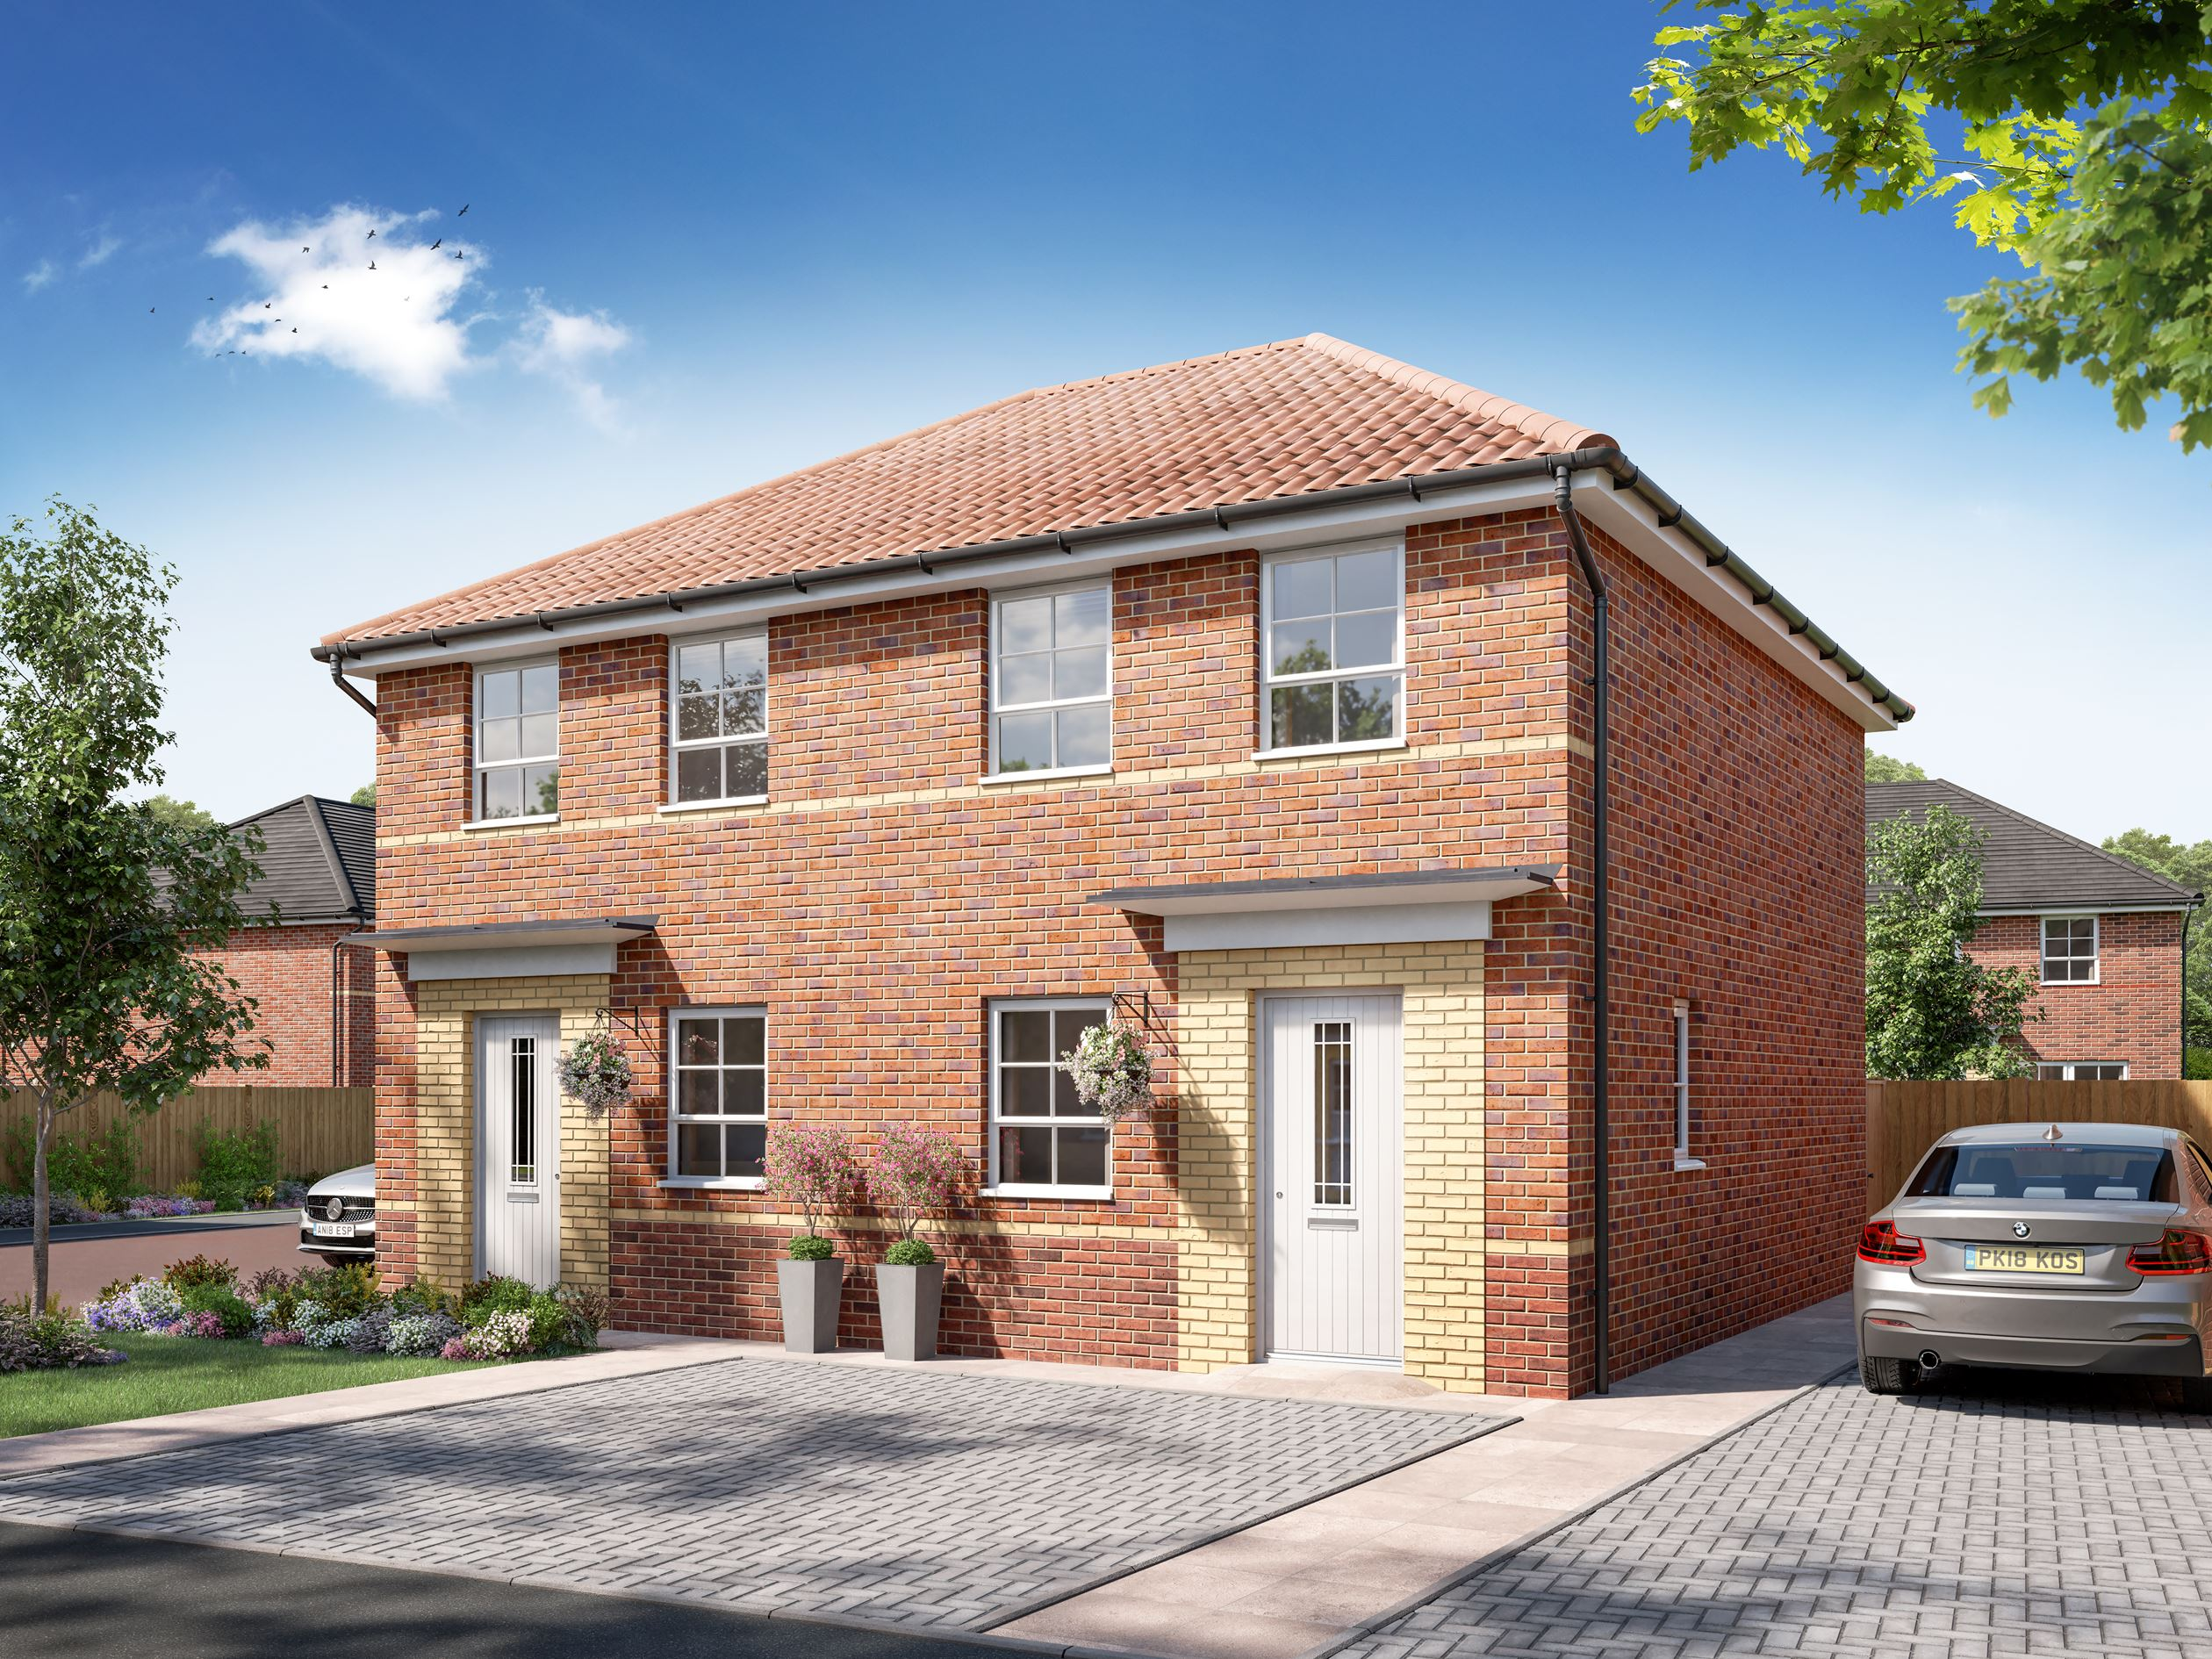 Exterior CGI view of Denford 3 bedroom home